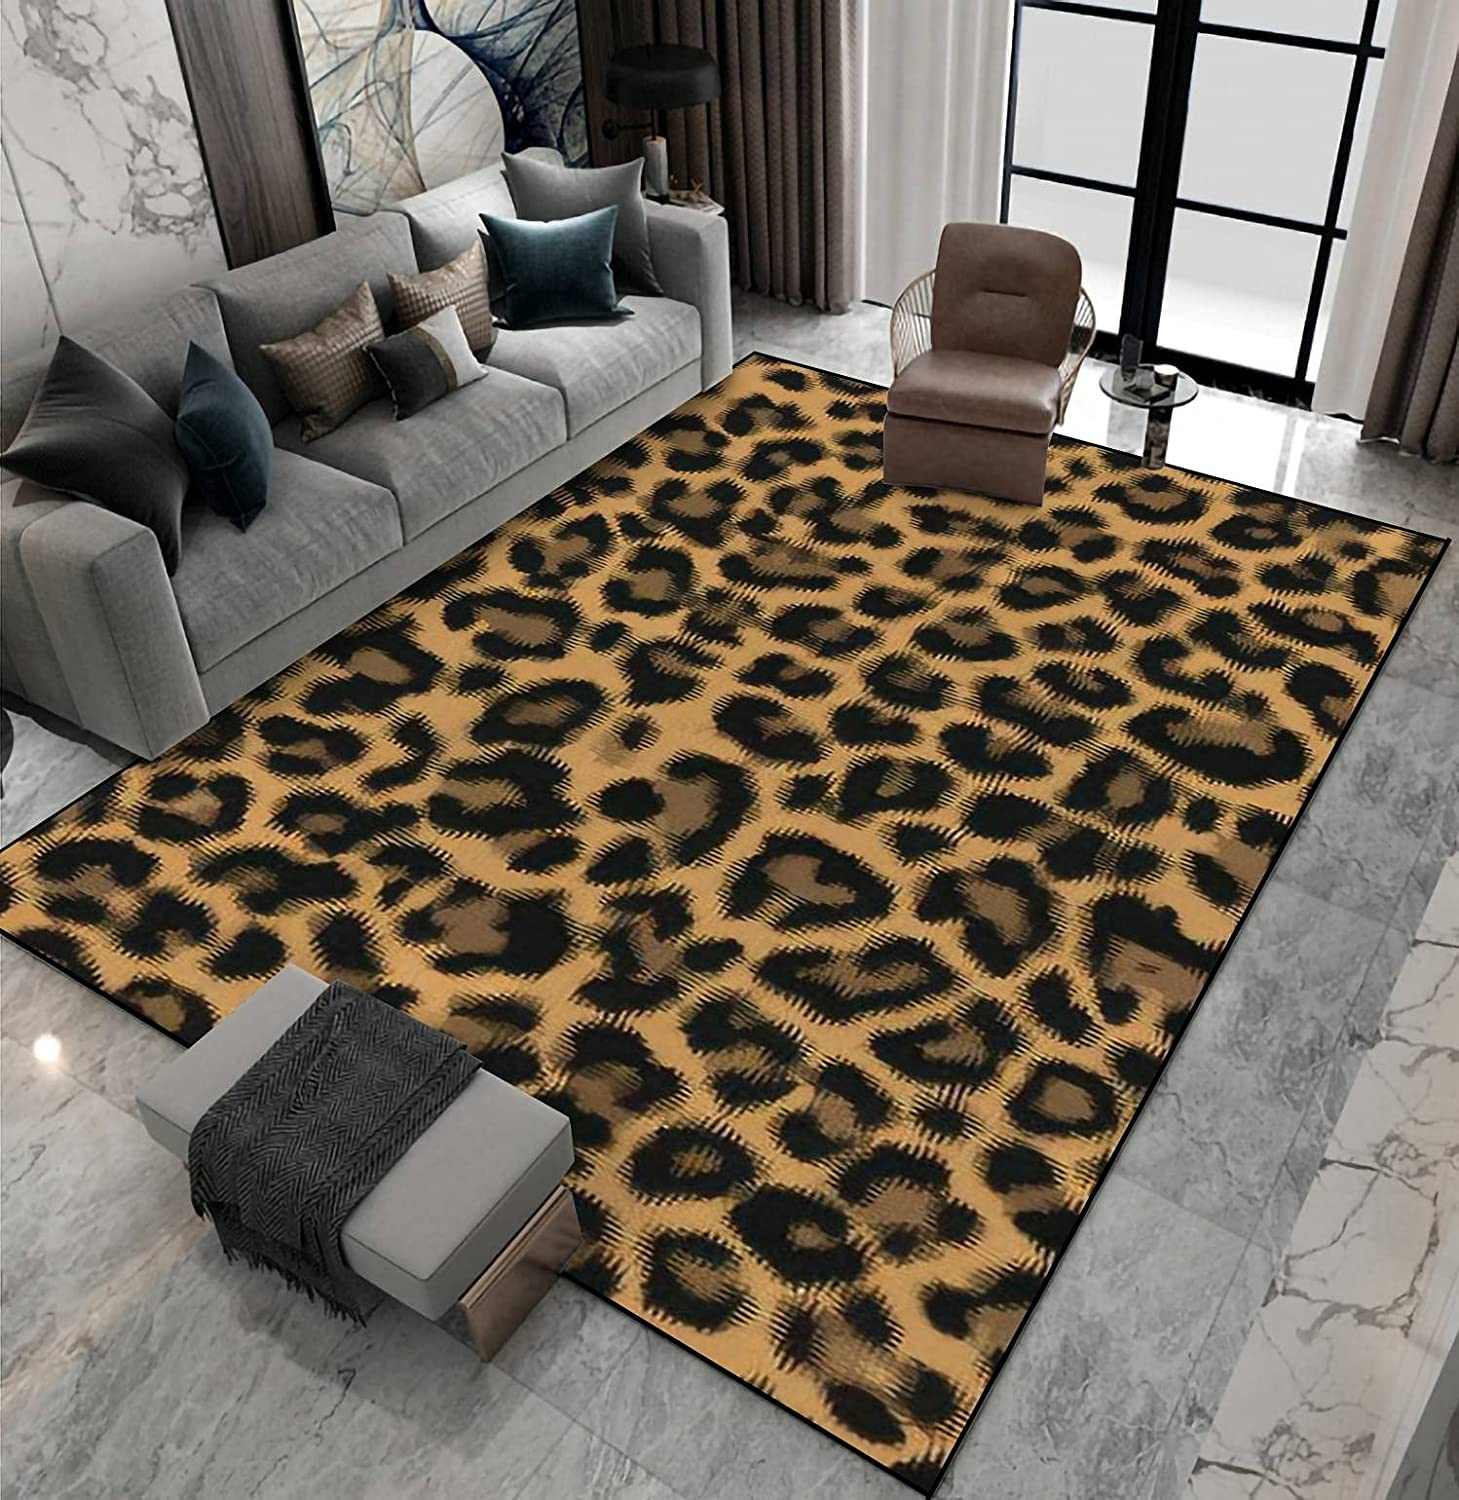 Area excellence Rug Max 47% OFF Non-Slip Floor Mat De Pattern Leopard Seamless Abstract